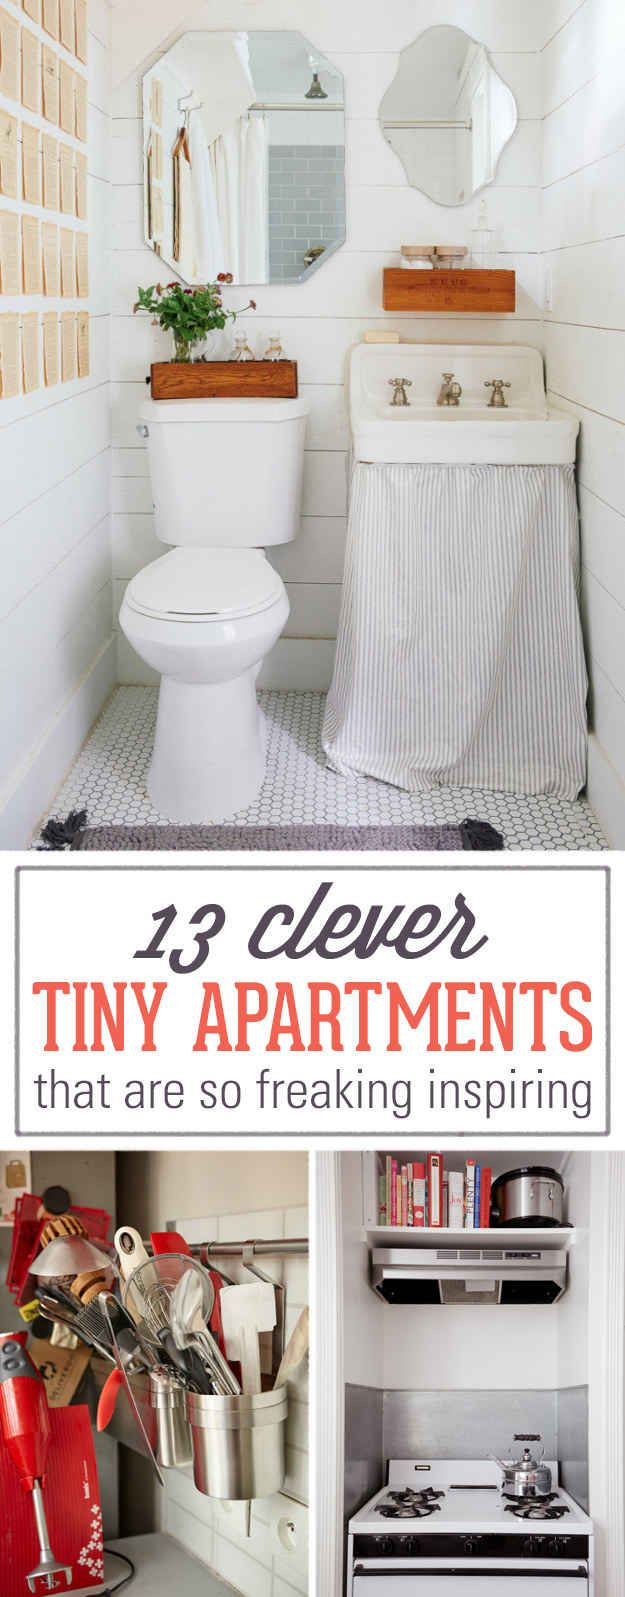 Bathroom designs for apartments - 13 Clever Tiny Apartments That Are So Freaking Inspiring